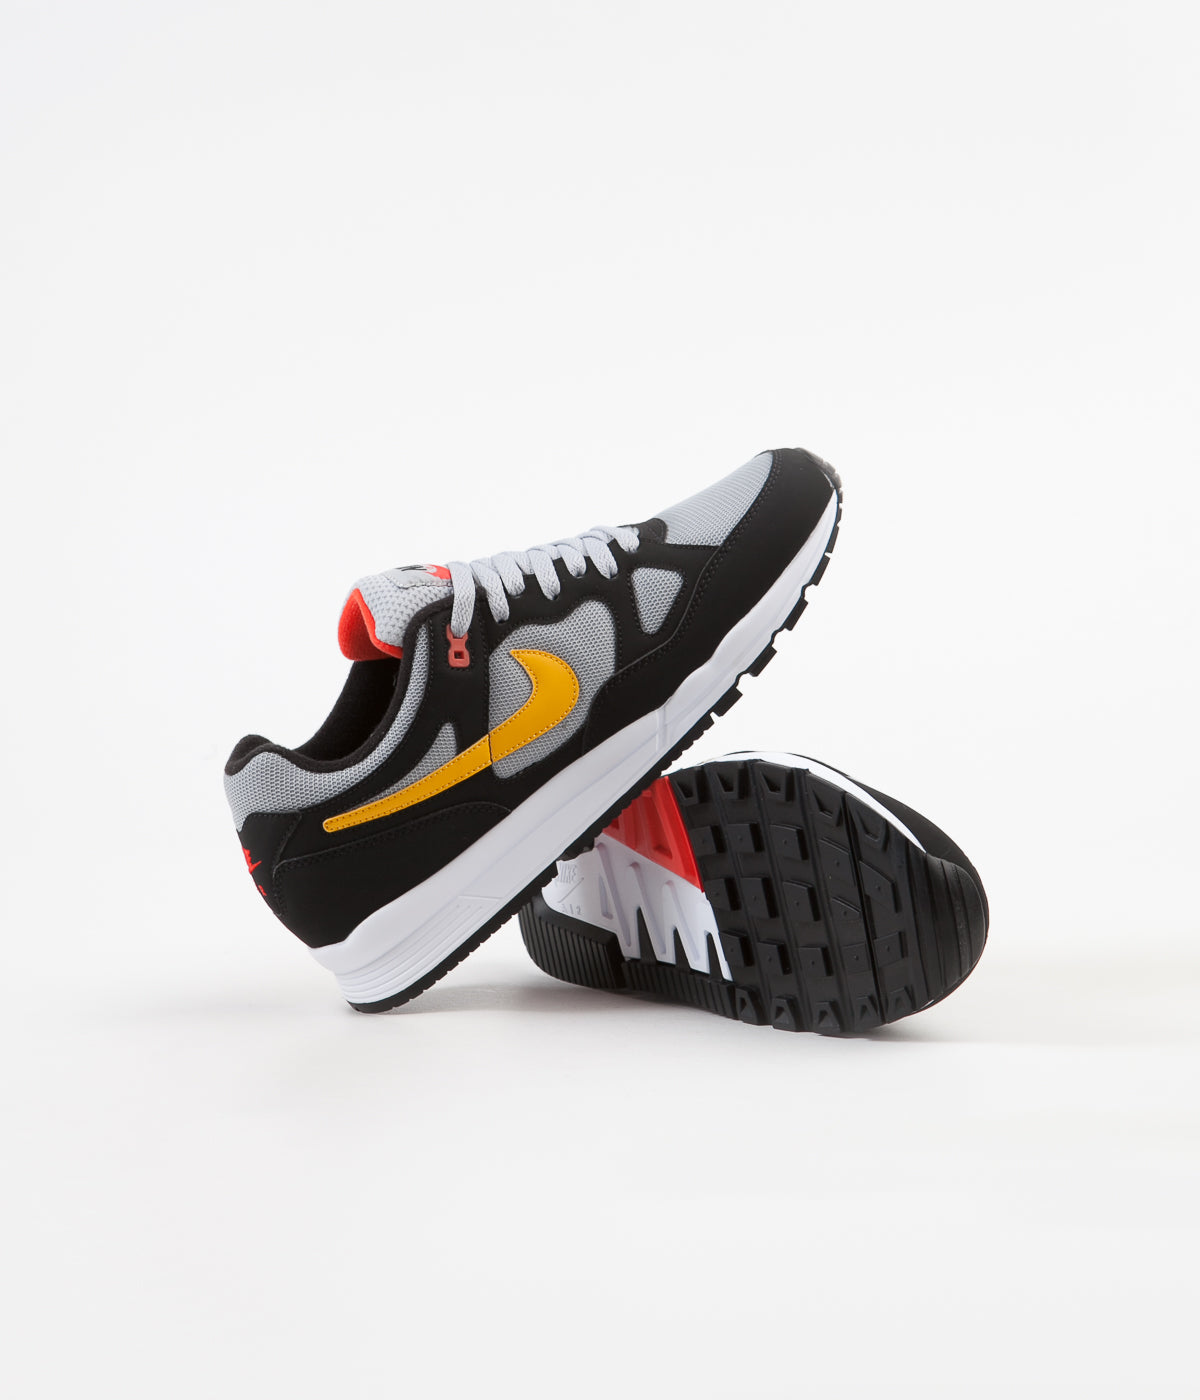 ... Nike Air Span II Shoes - Black   Yellow Ochre - Wolf Grey ... 8c87d53bc